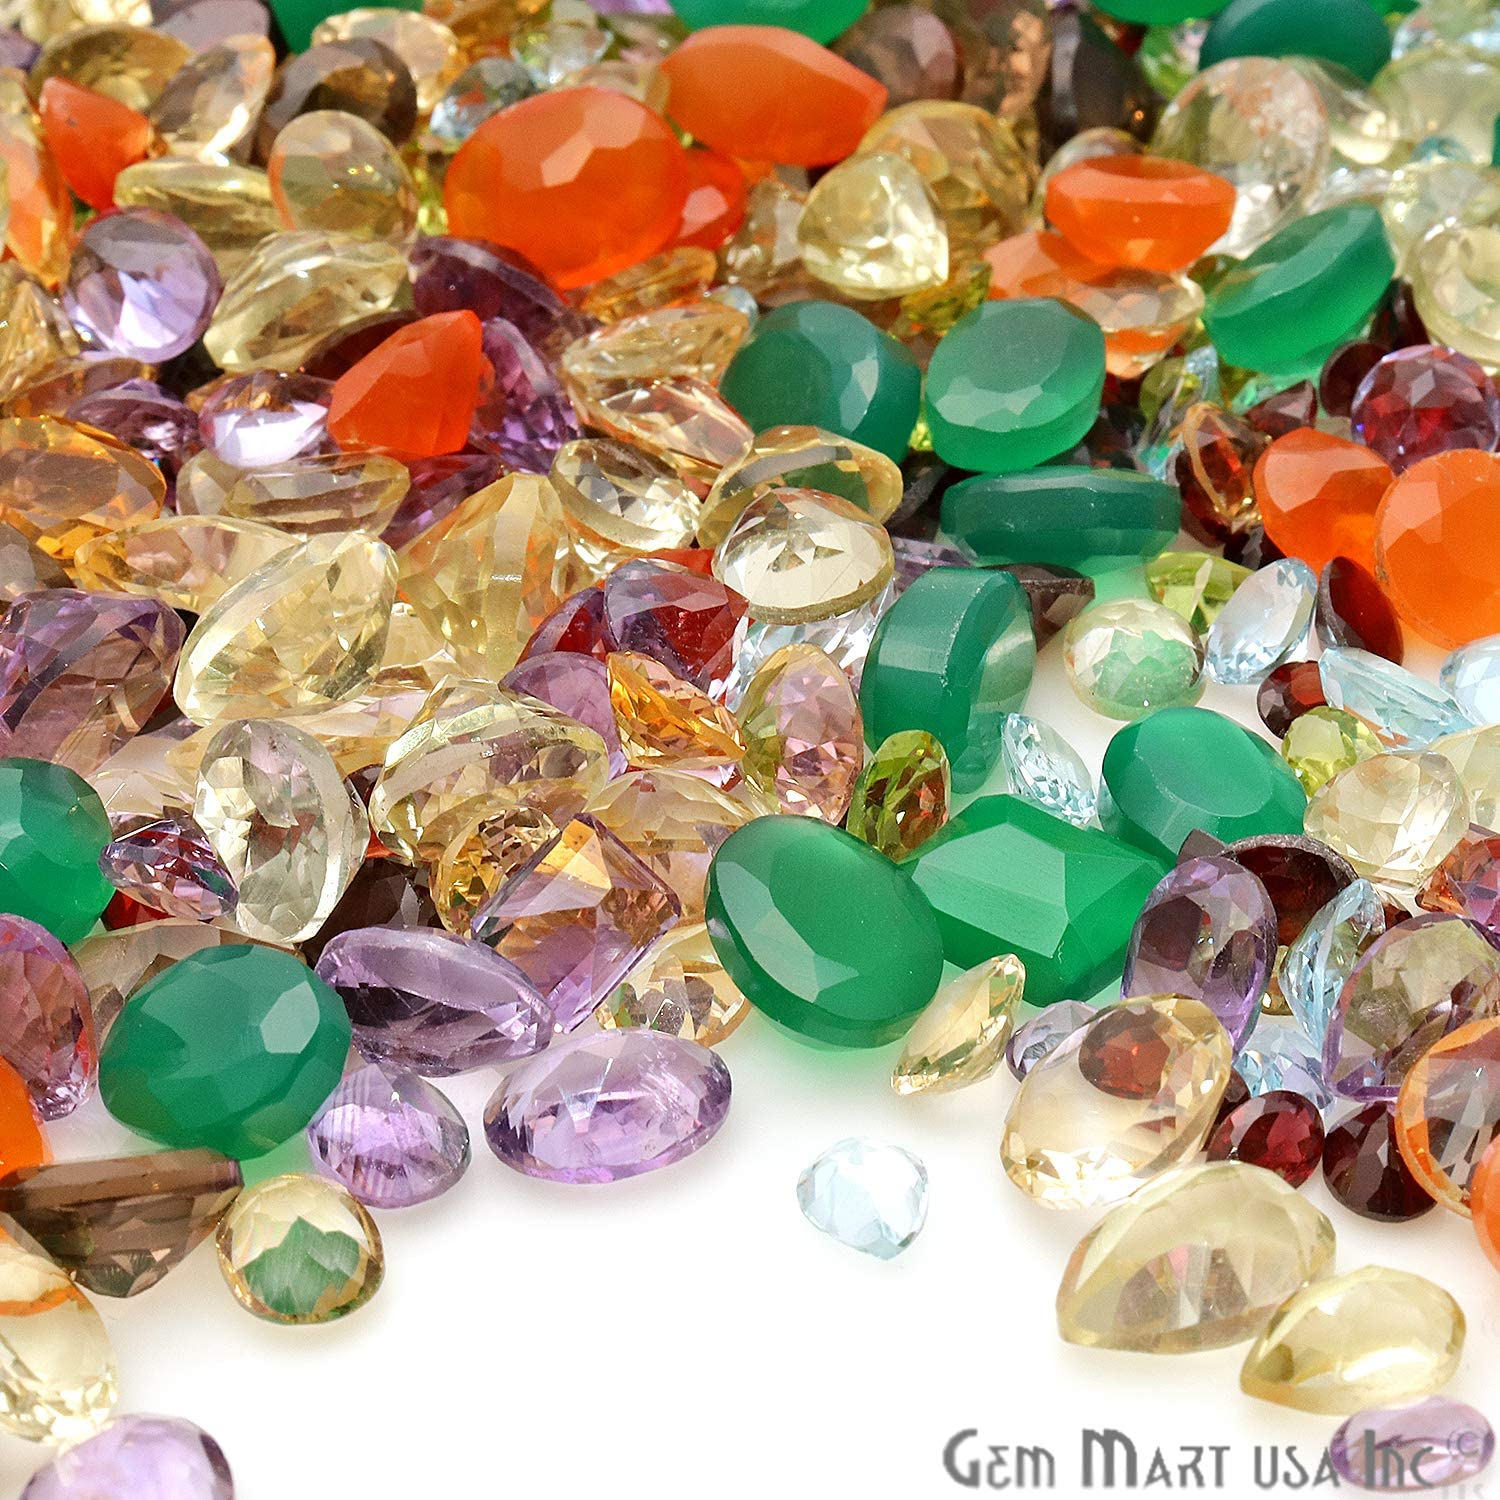 EM-60002 Wholesale 20cts Lot Aaa Quality Natural Emerald 4mm Round loose gemstone for Making jewelry GemMartUSA